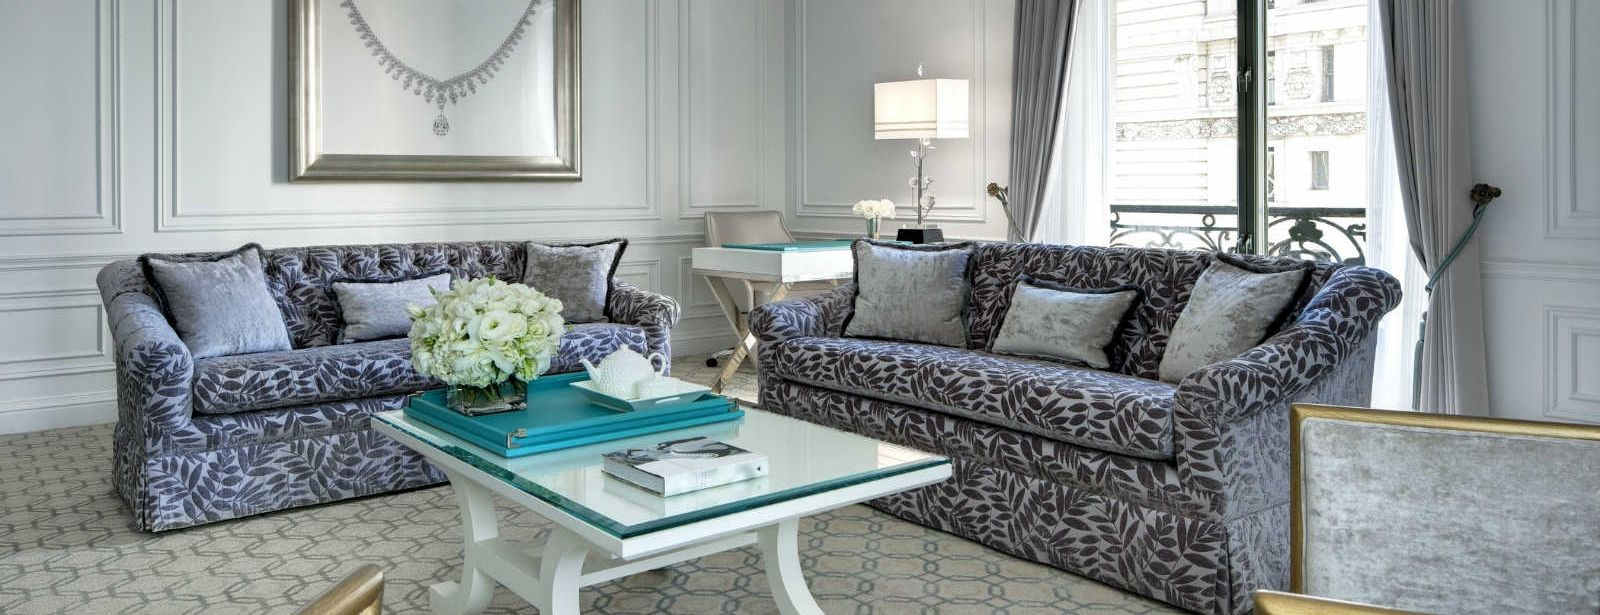 Tiffany suite the st regis new york for Tiffany d living room